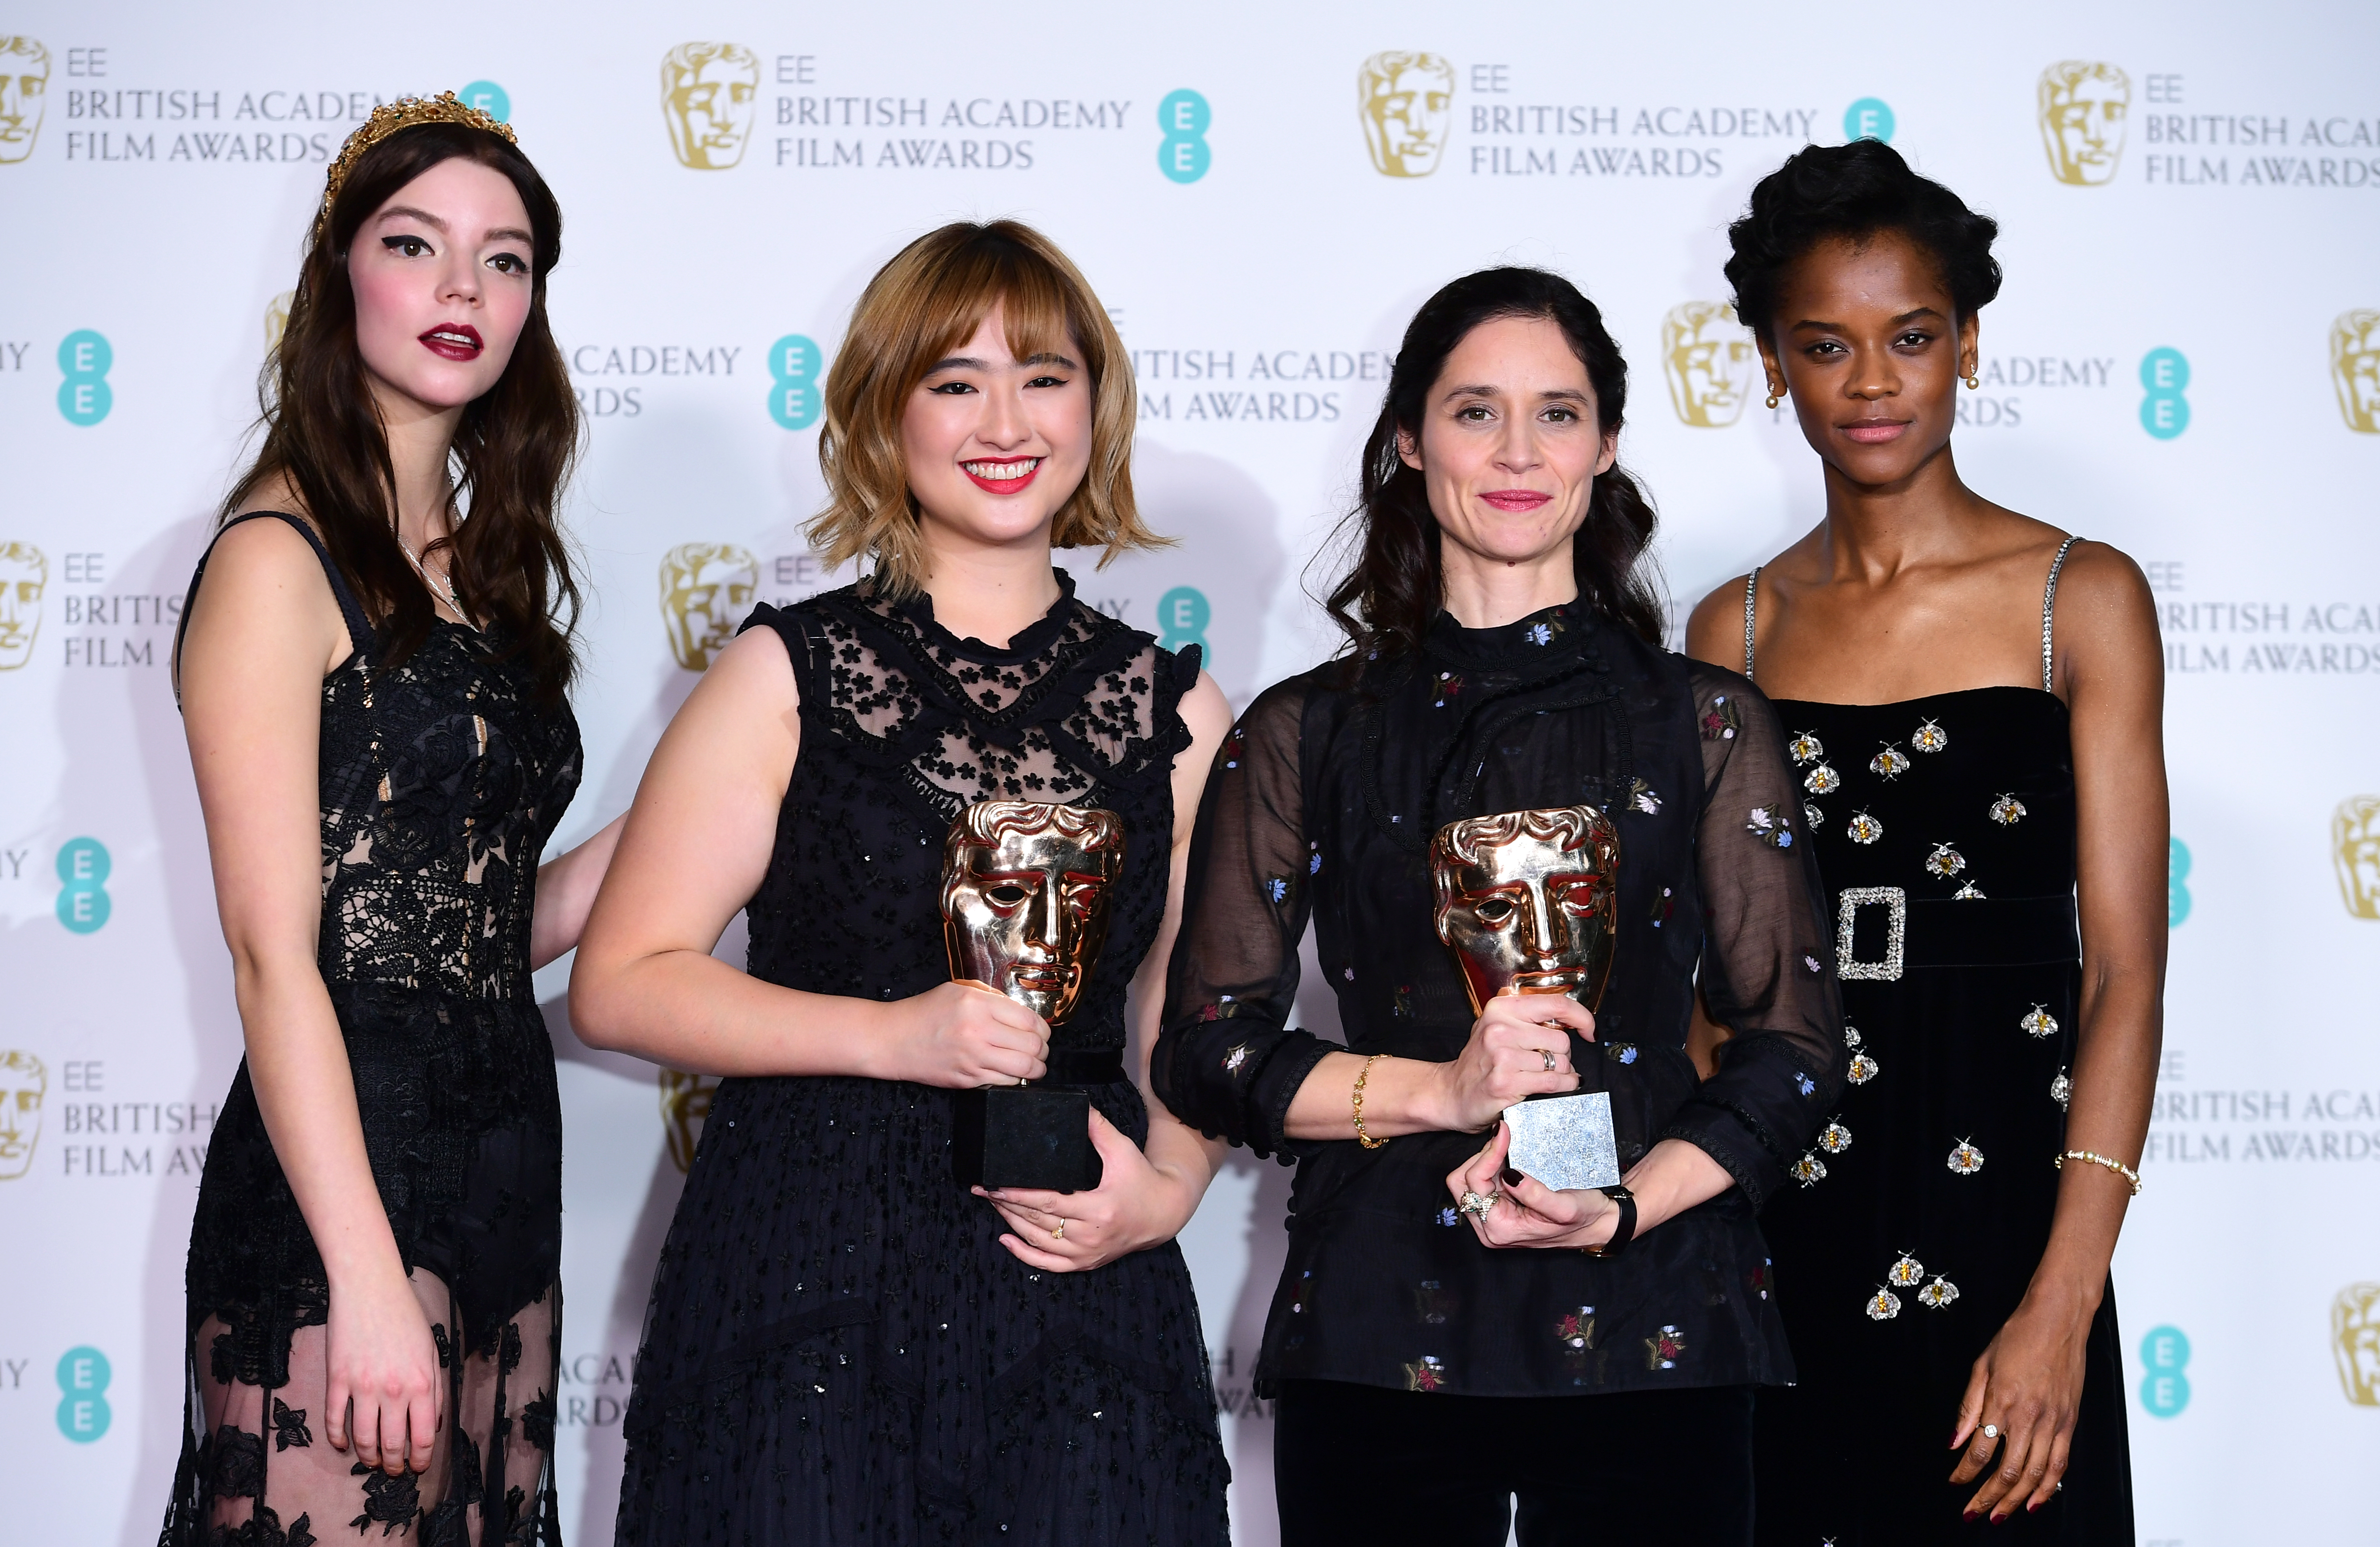 Anya Joy Taylor (left) and Letitia Right (right) present the BAFTA for British Short Animation to Ser En Low (second left) and Paloma Baeza in the press room at the EE British Academy Film Awards held at the 2017 Baftas